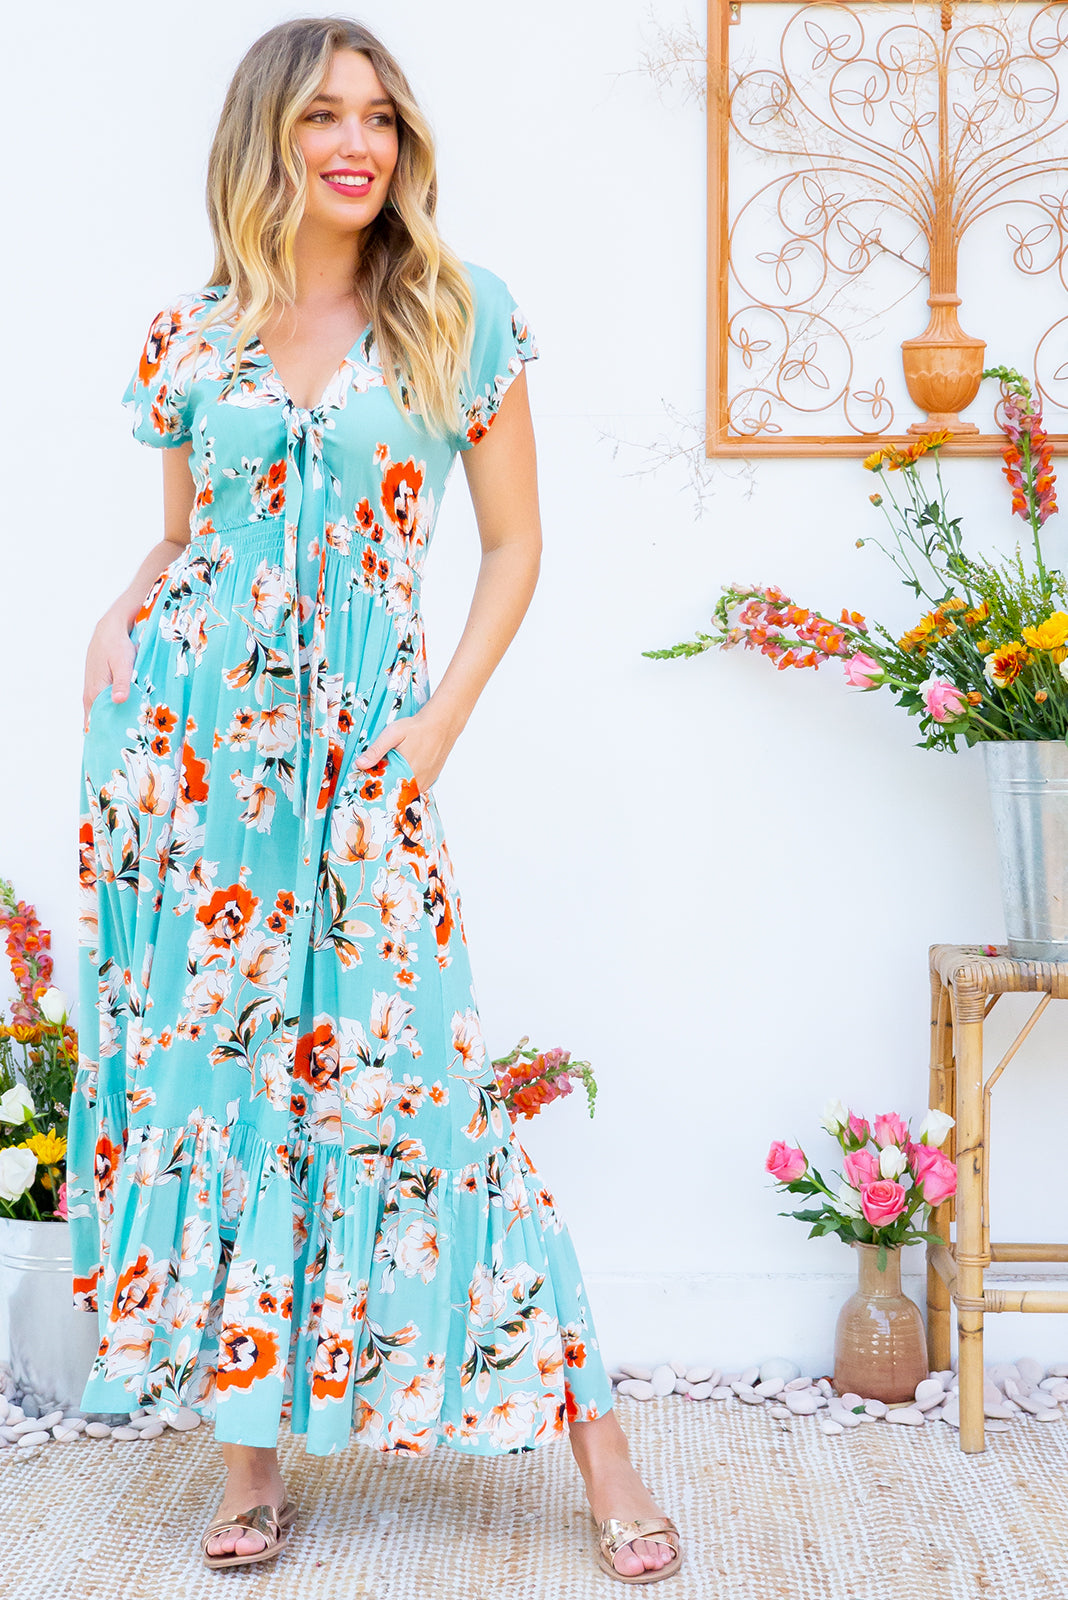 Nellie Green Mist Maxi Dress Maxi dress features elasticated empire line with a cap sleeve and deep v neck the fabric is a soft woven rayon in a celadon green based floral print